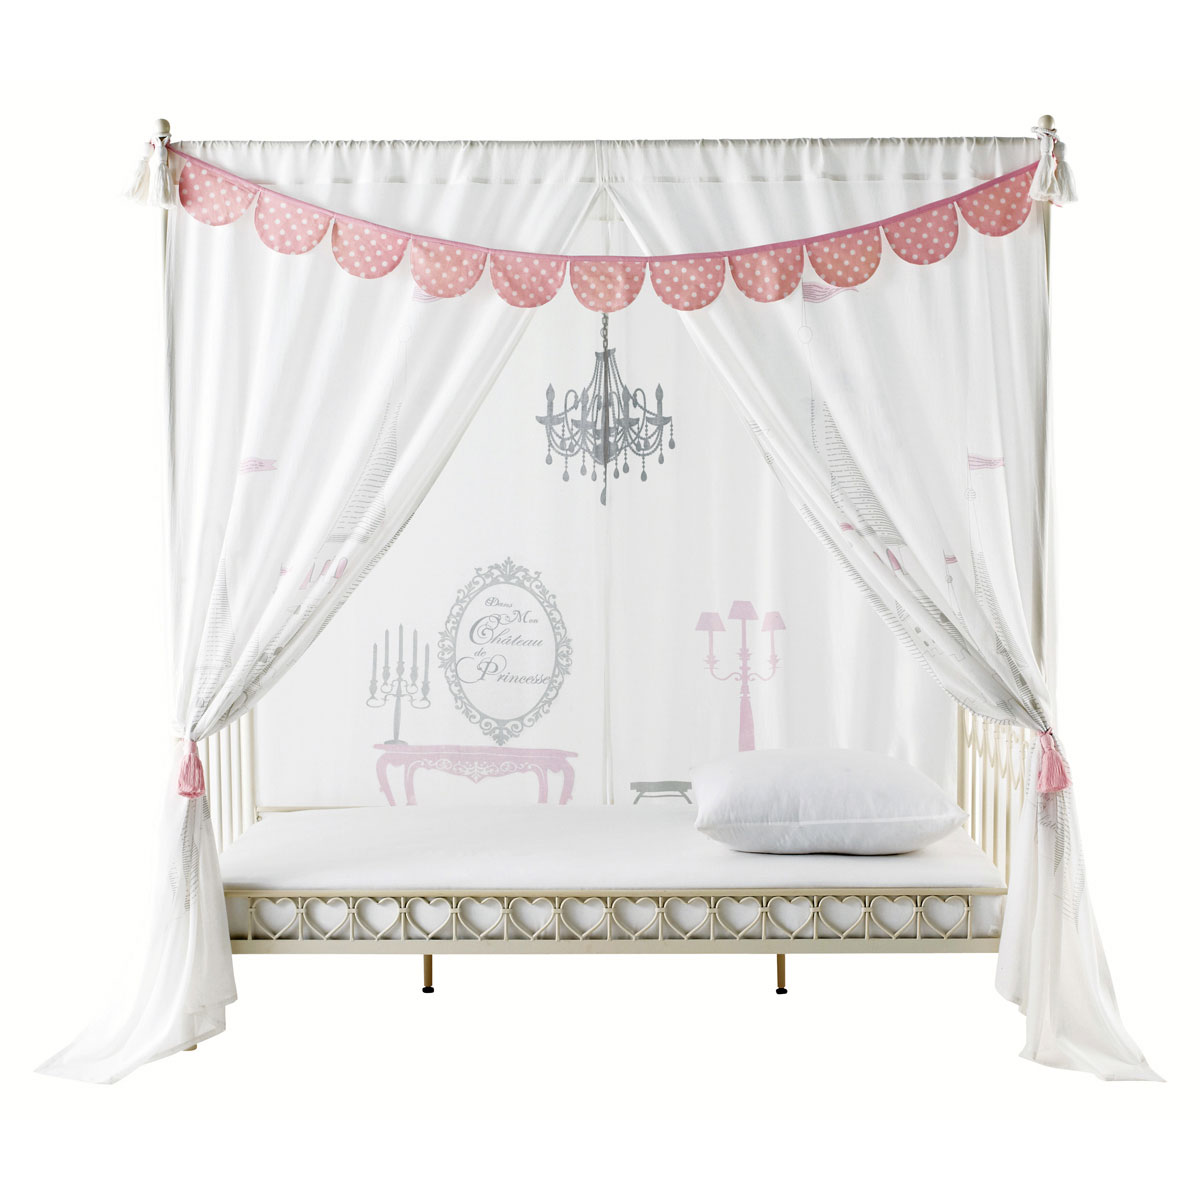 chambre de princesse comme cendrillon avant minuit. Black Bedroom Furniture Sets. Home Design Ideas